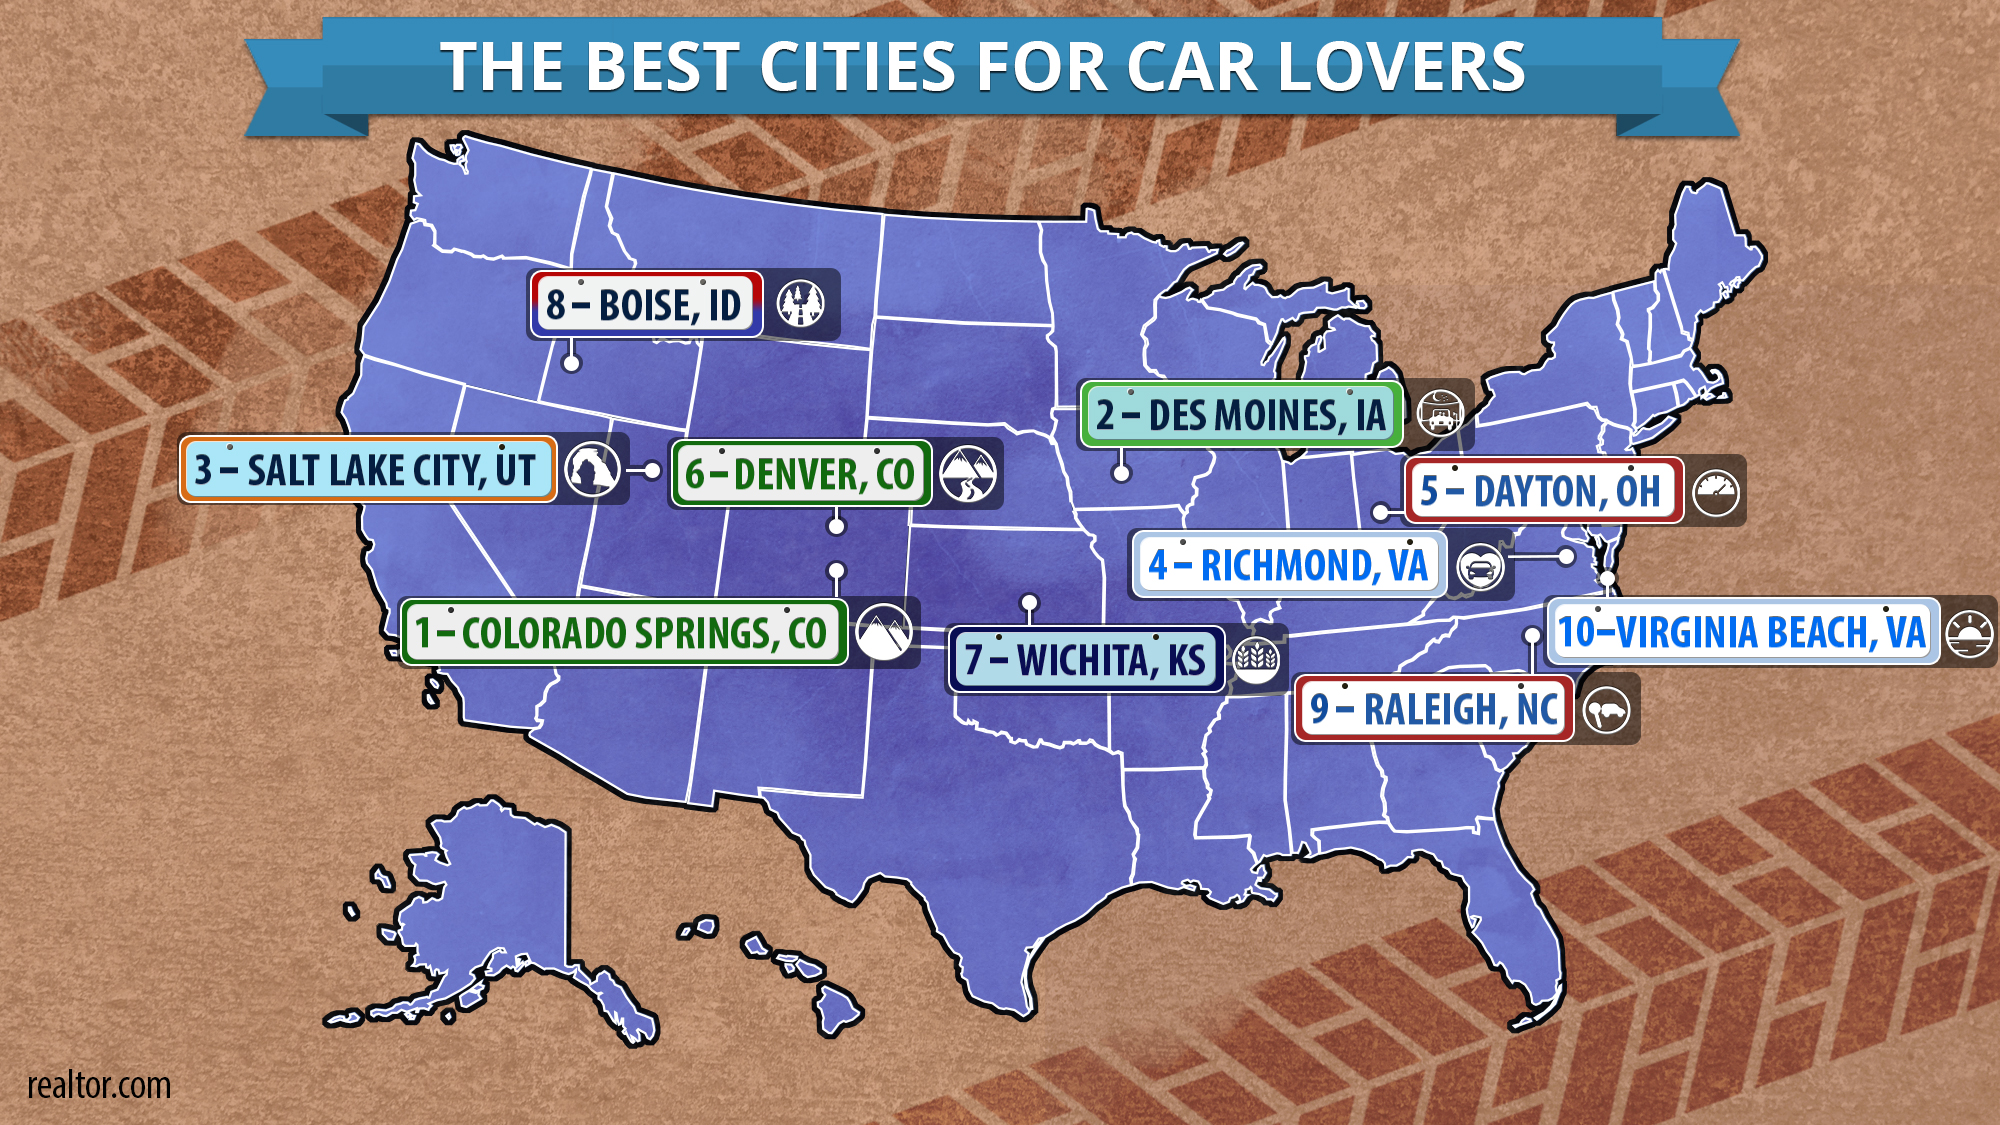 Latest Survey for Car Lovers Ranks the Greater Des Moines Metro